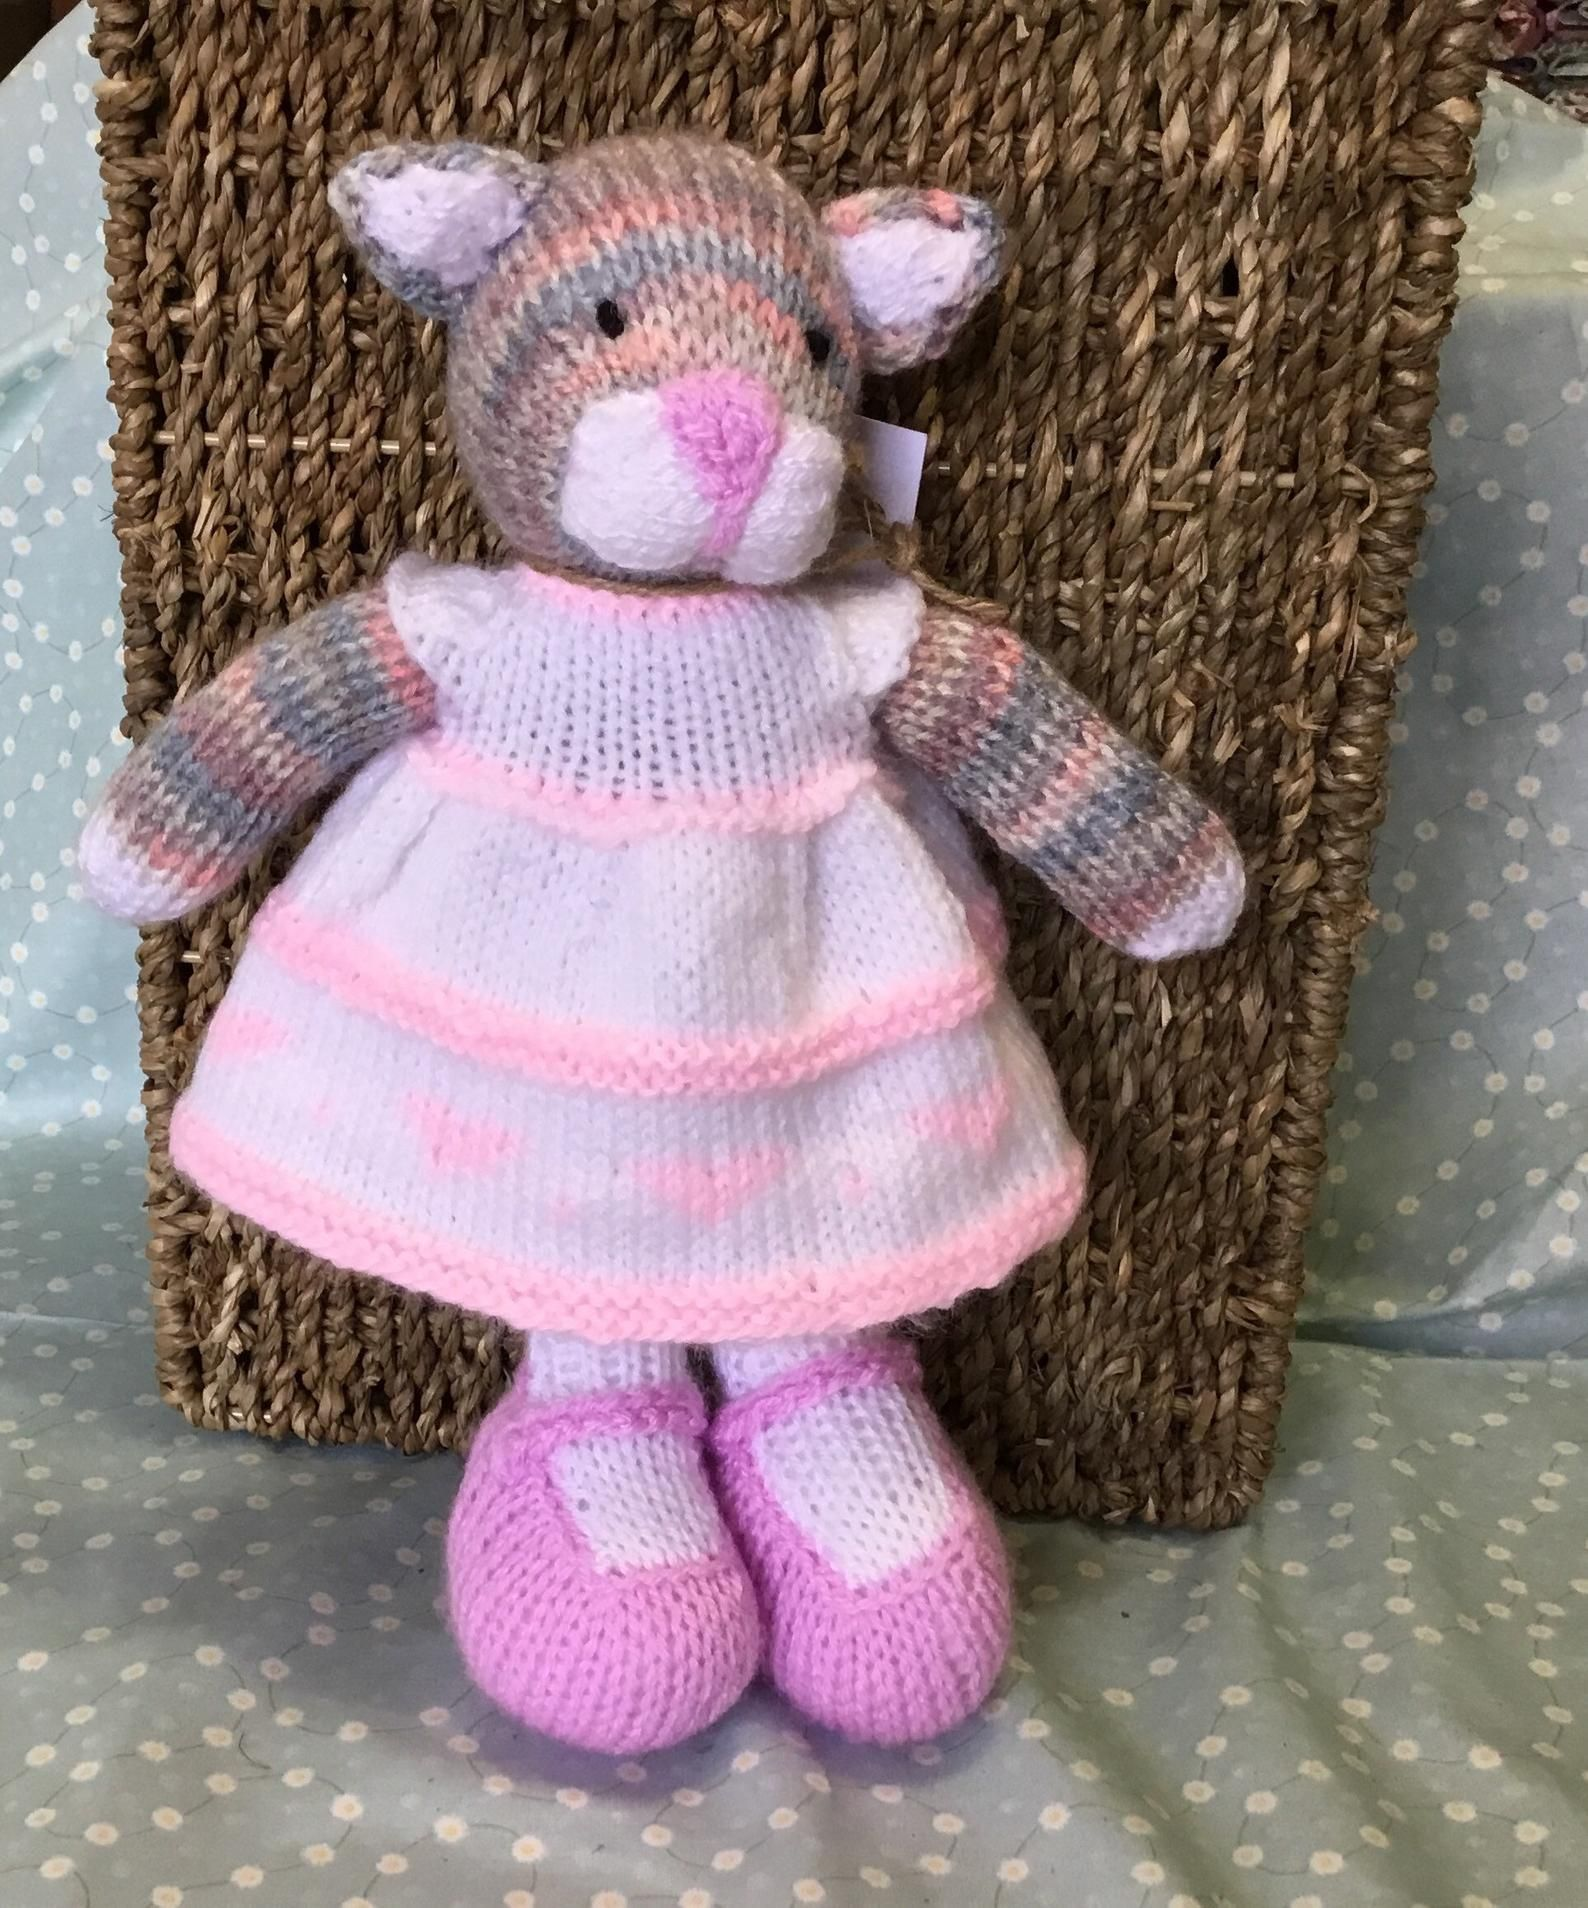 KNITTING PATTERN DK Teddy Bear Toy Easy Knit 108